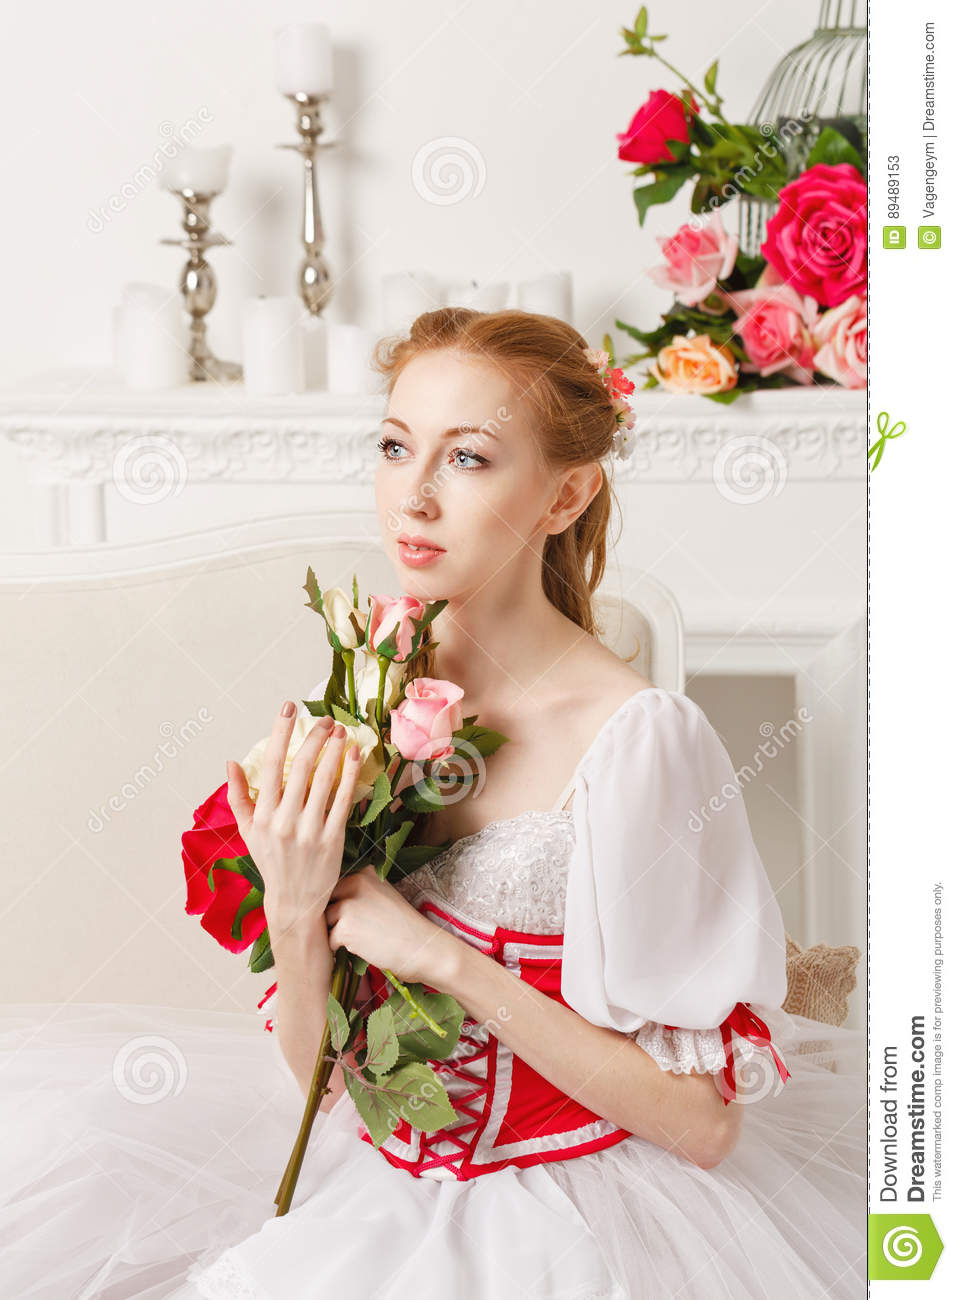 Pretty Ballerina Holding Flowers Stock Image Image Of Artist